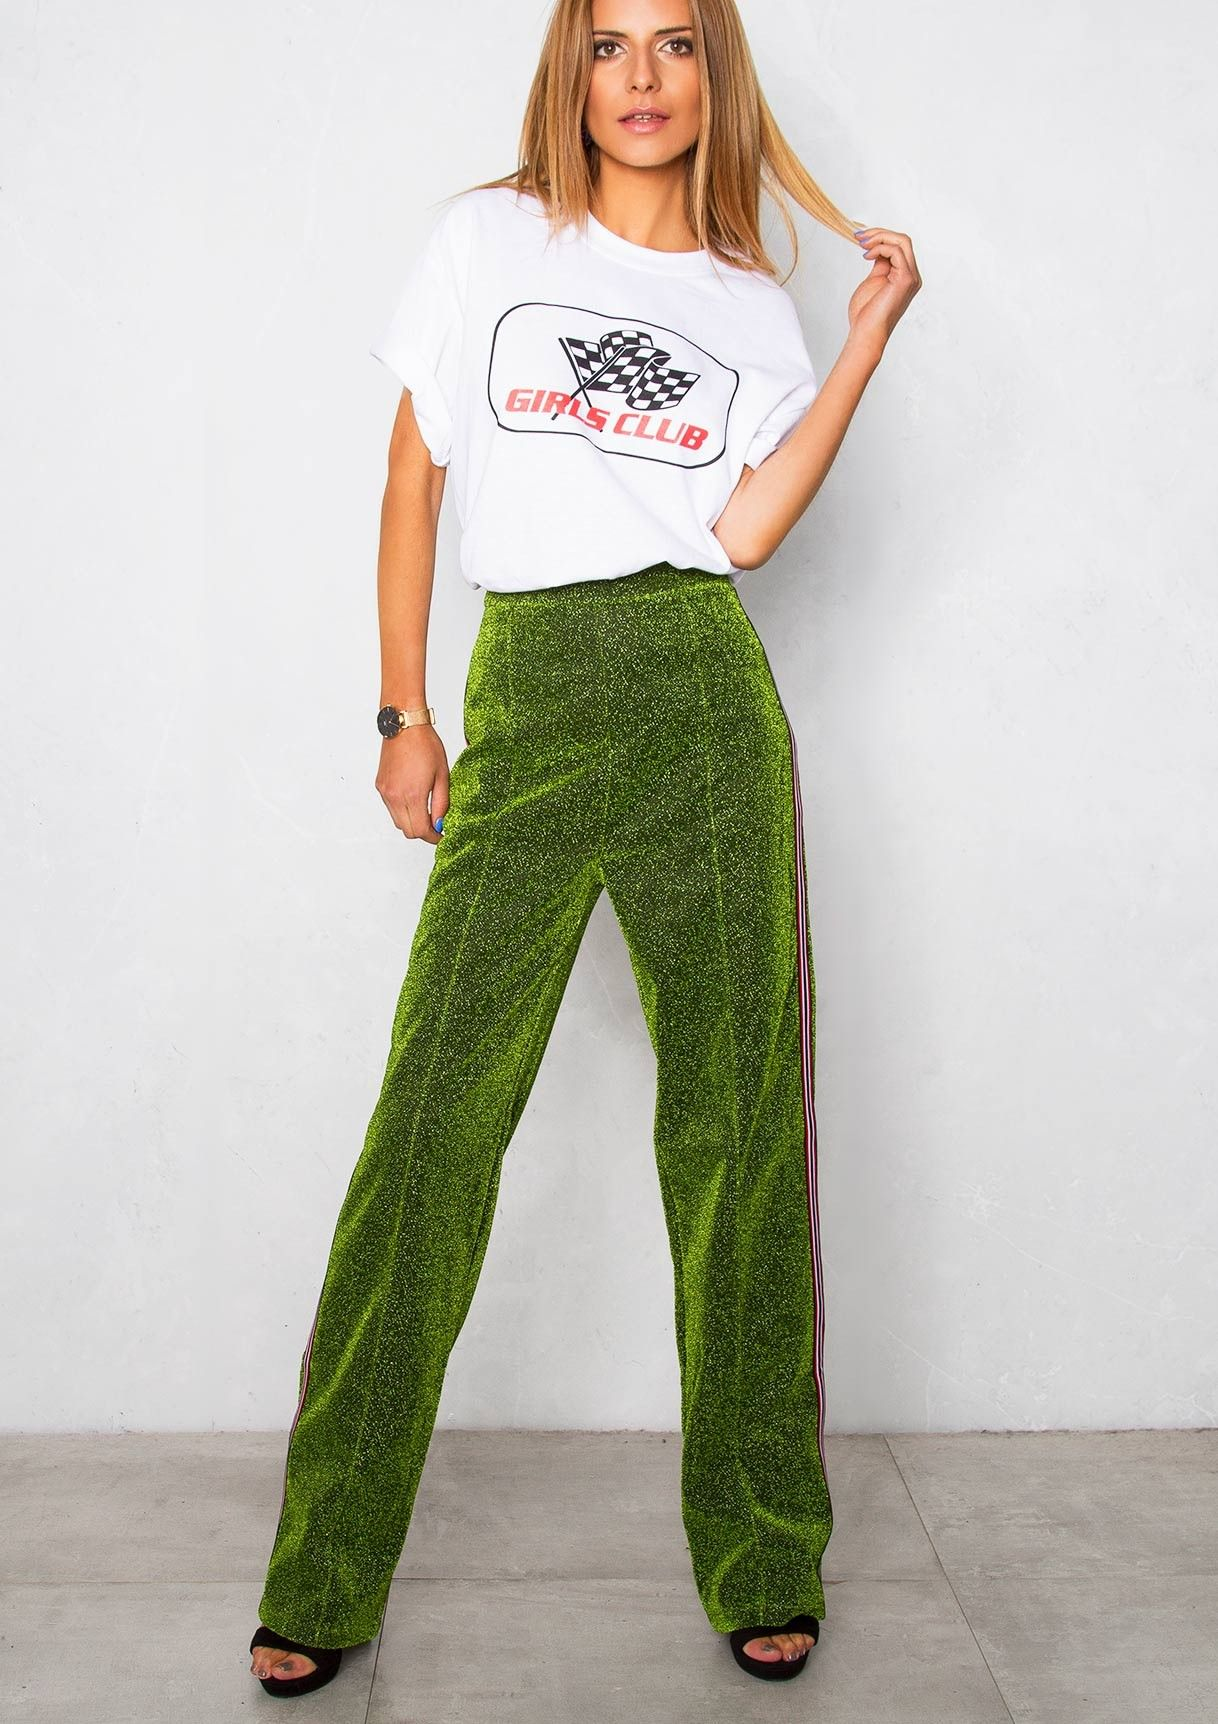 722db78920d771 Shelby Green Glitter Stripe Trousers in 2019 | A/W17 Things I need ...